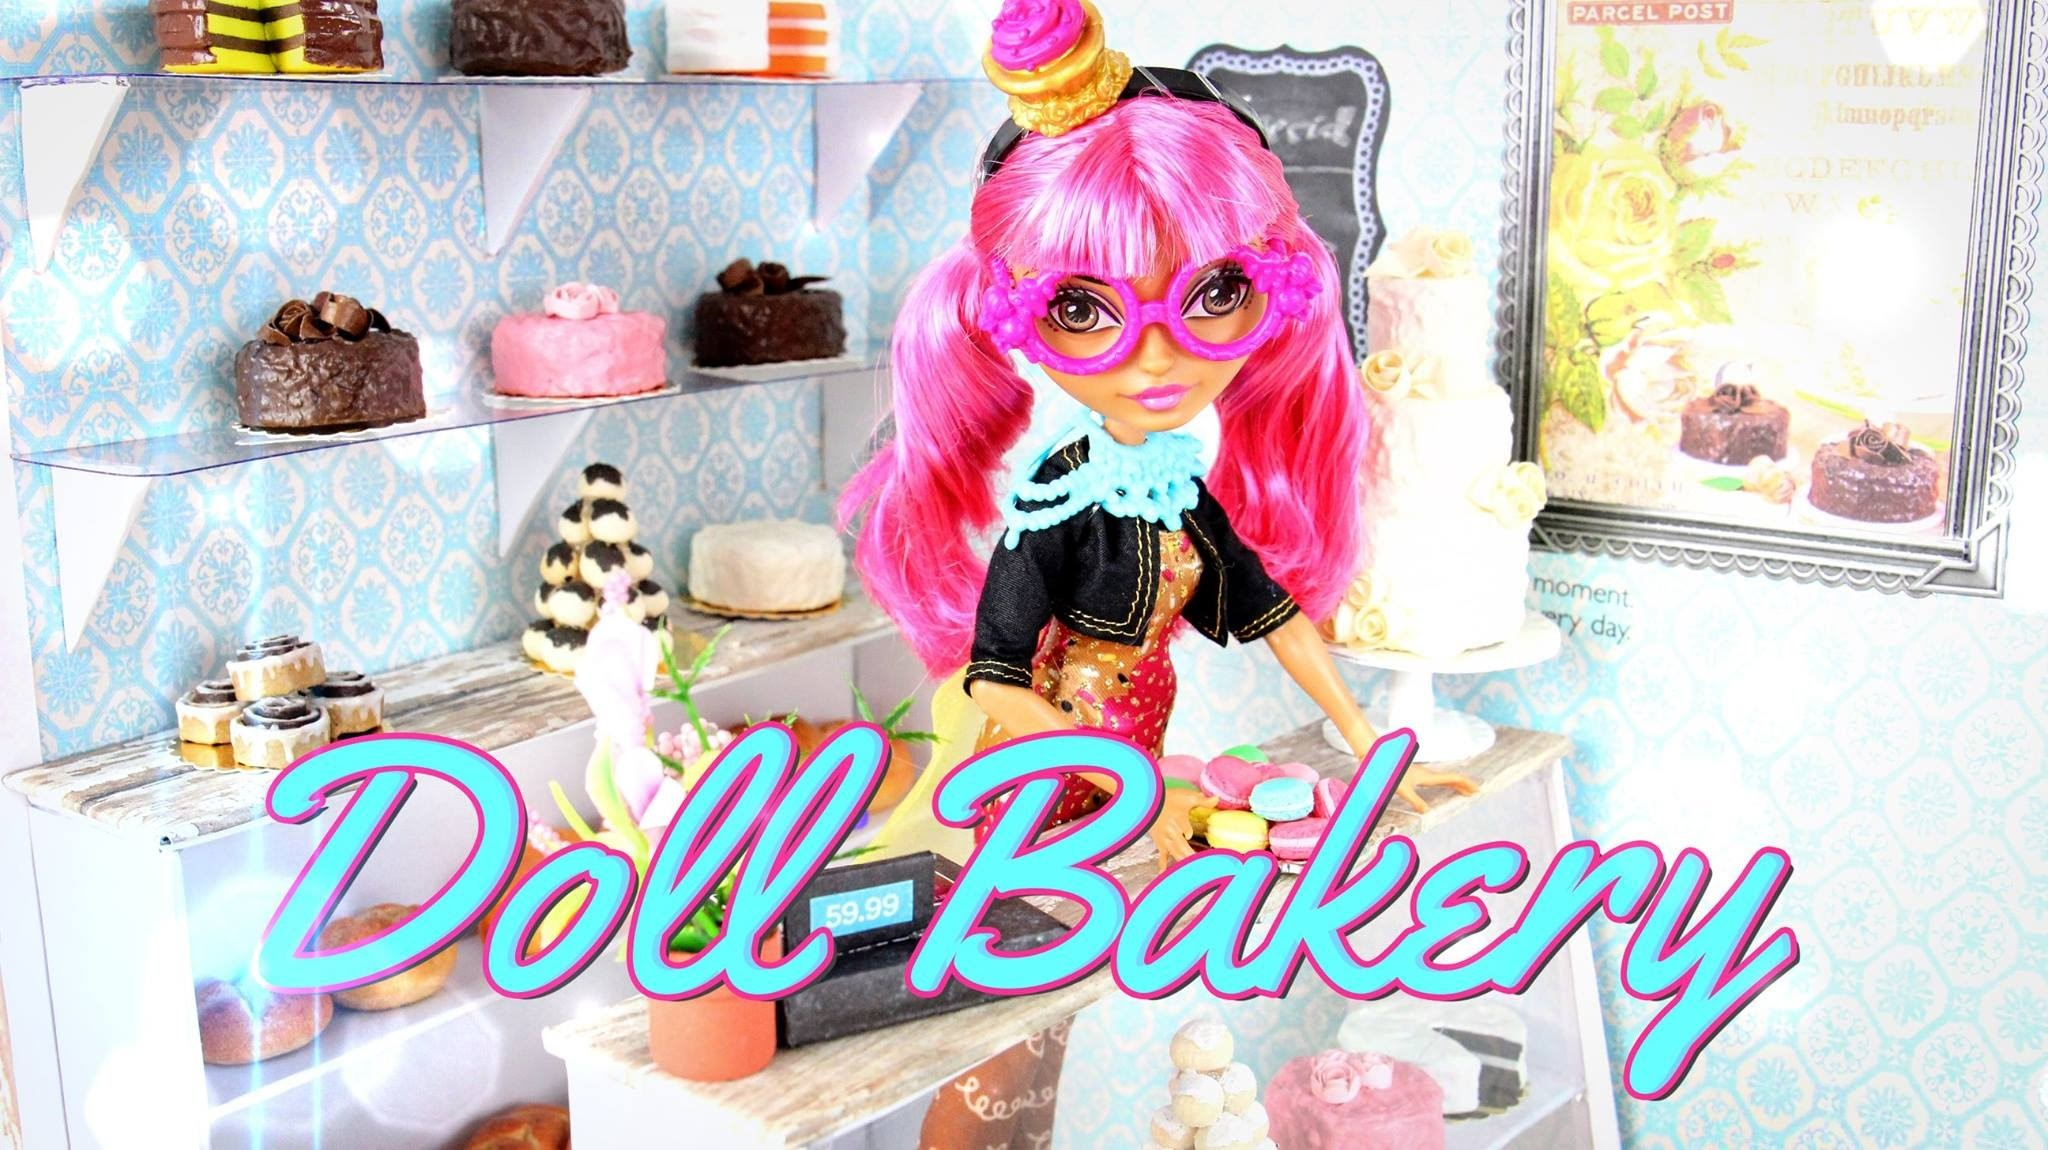 How to Make a Doll Bakery - Doll Crafts